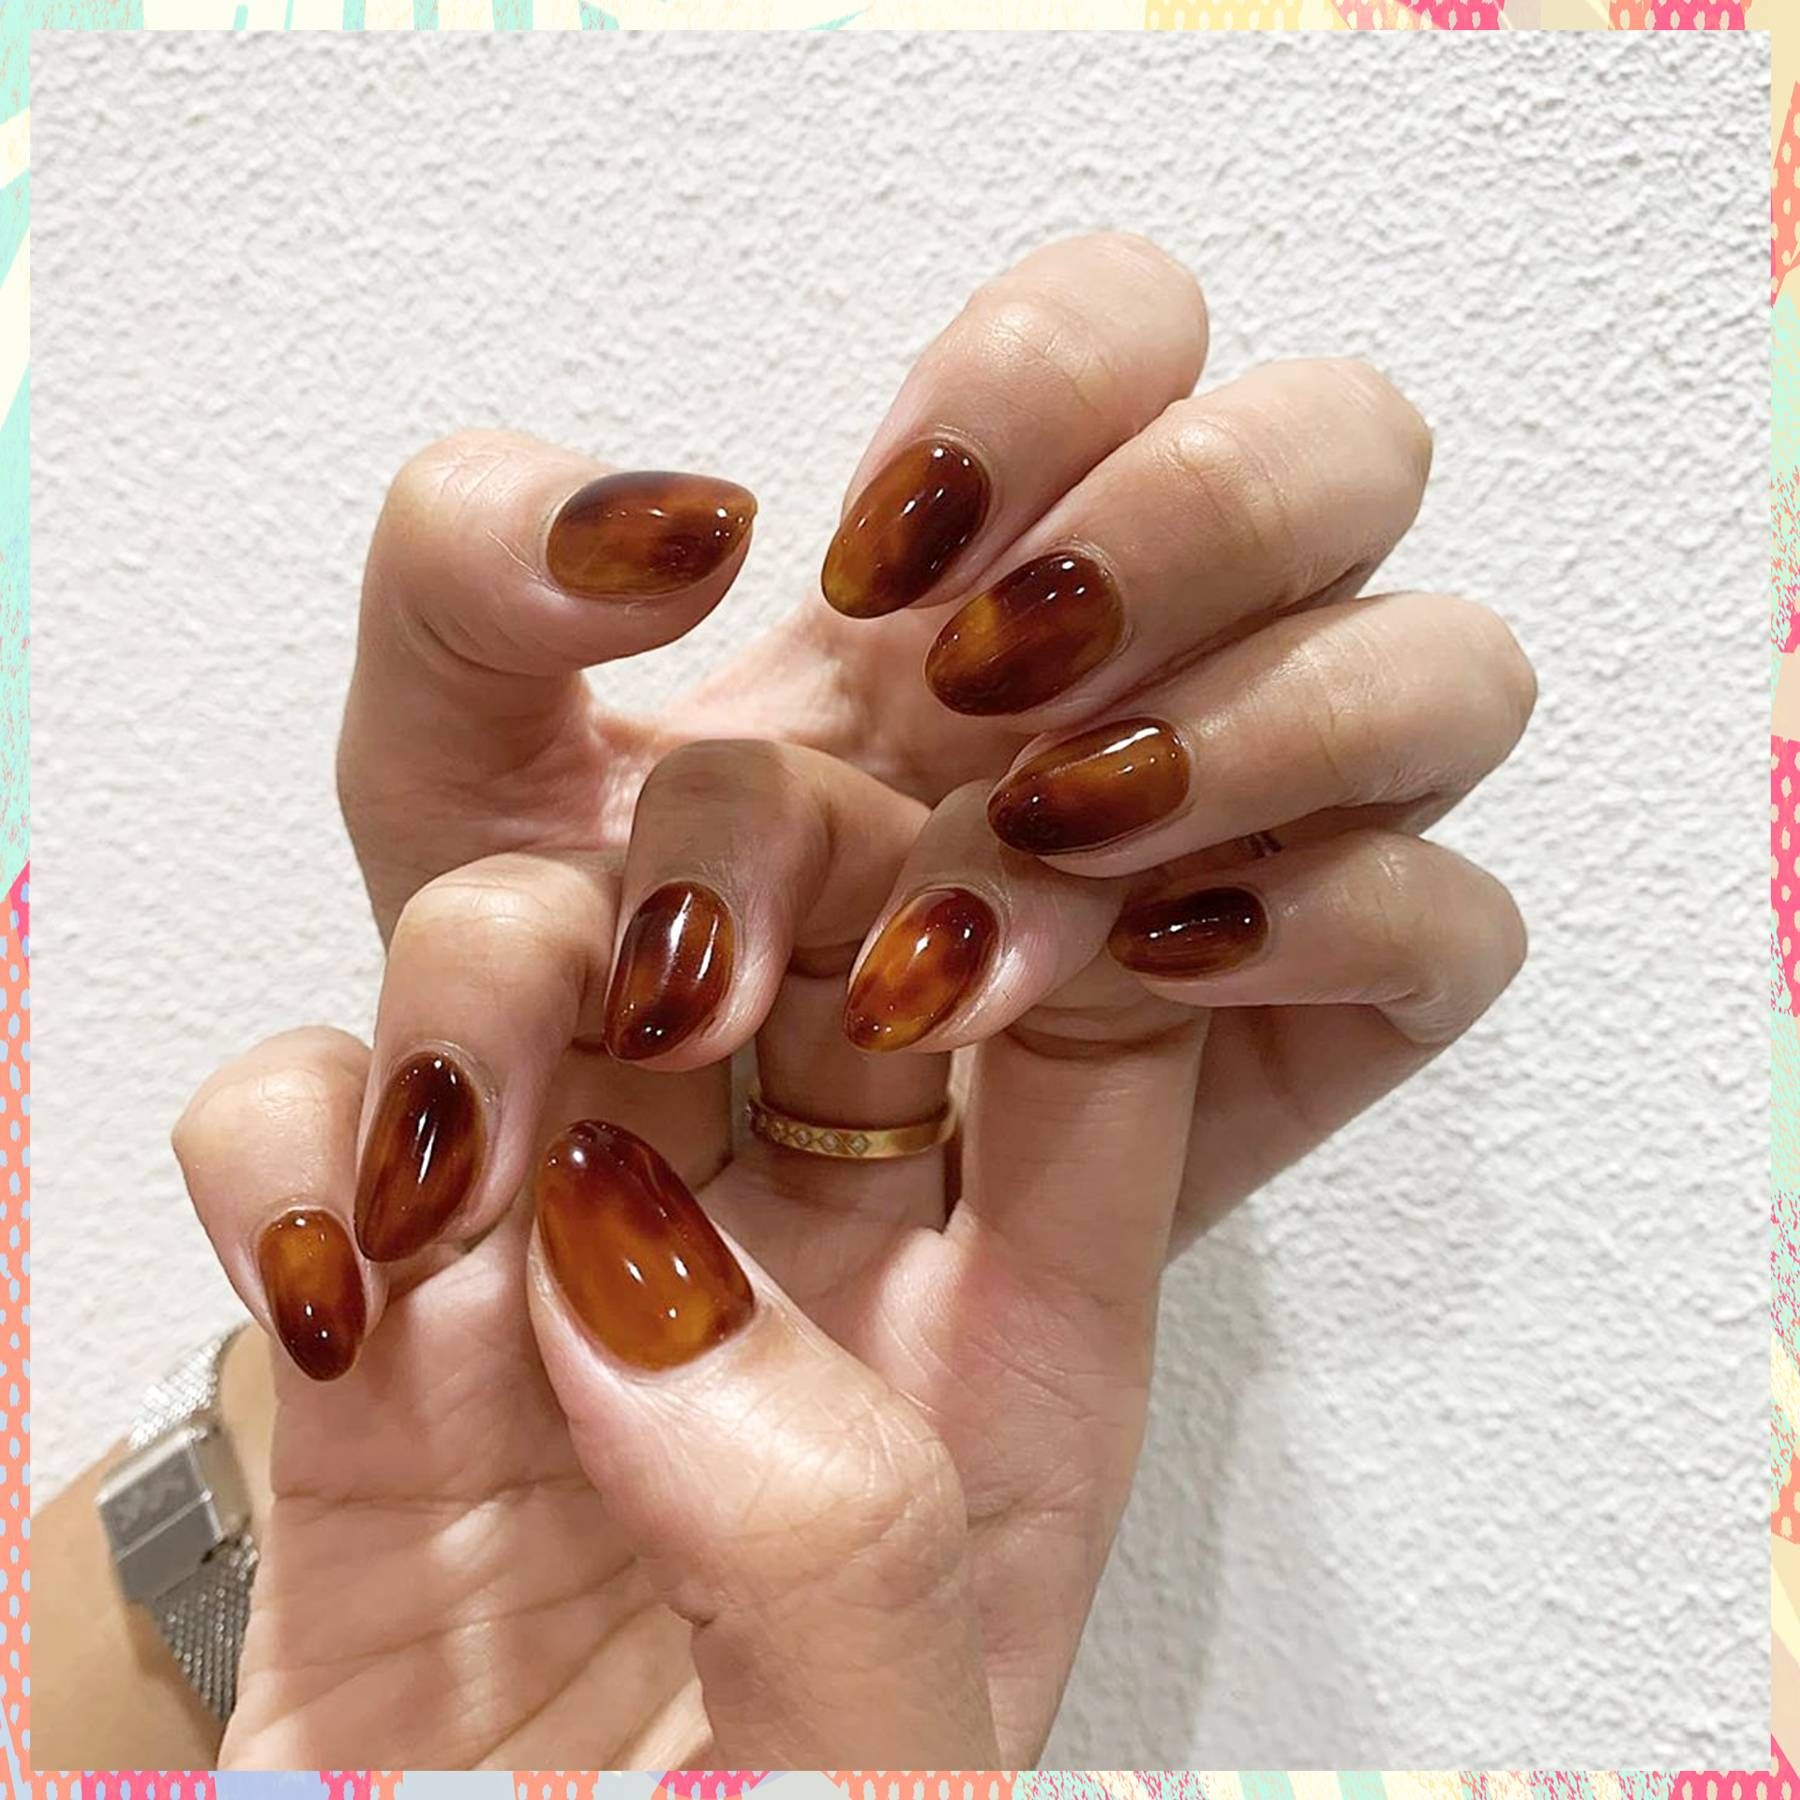 Tortoiseshell nails are Autumns coolest manicure trend for 2019